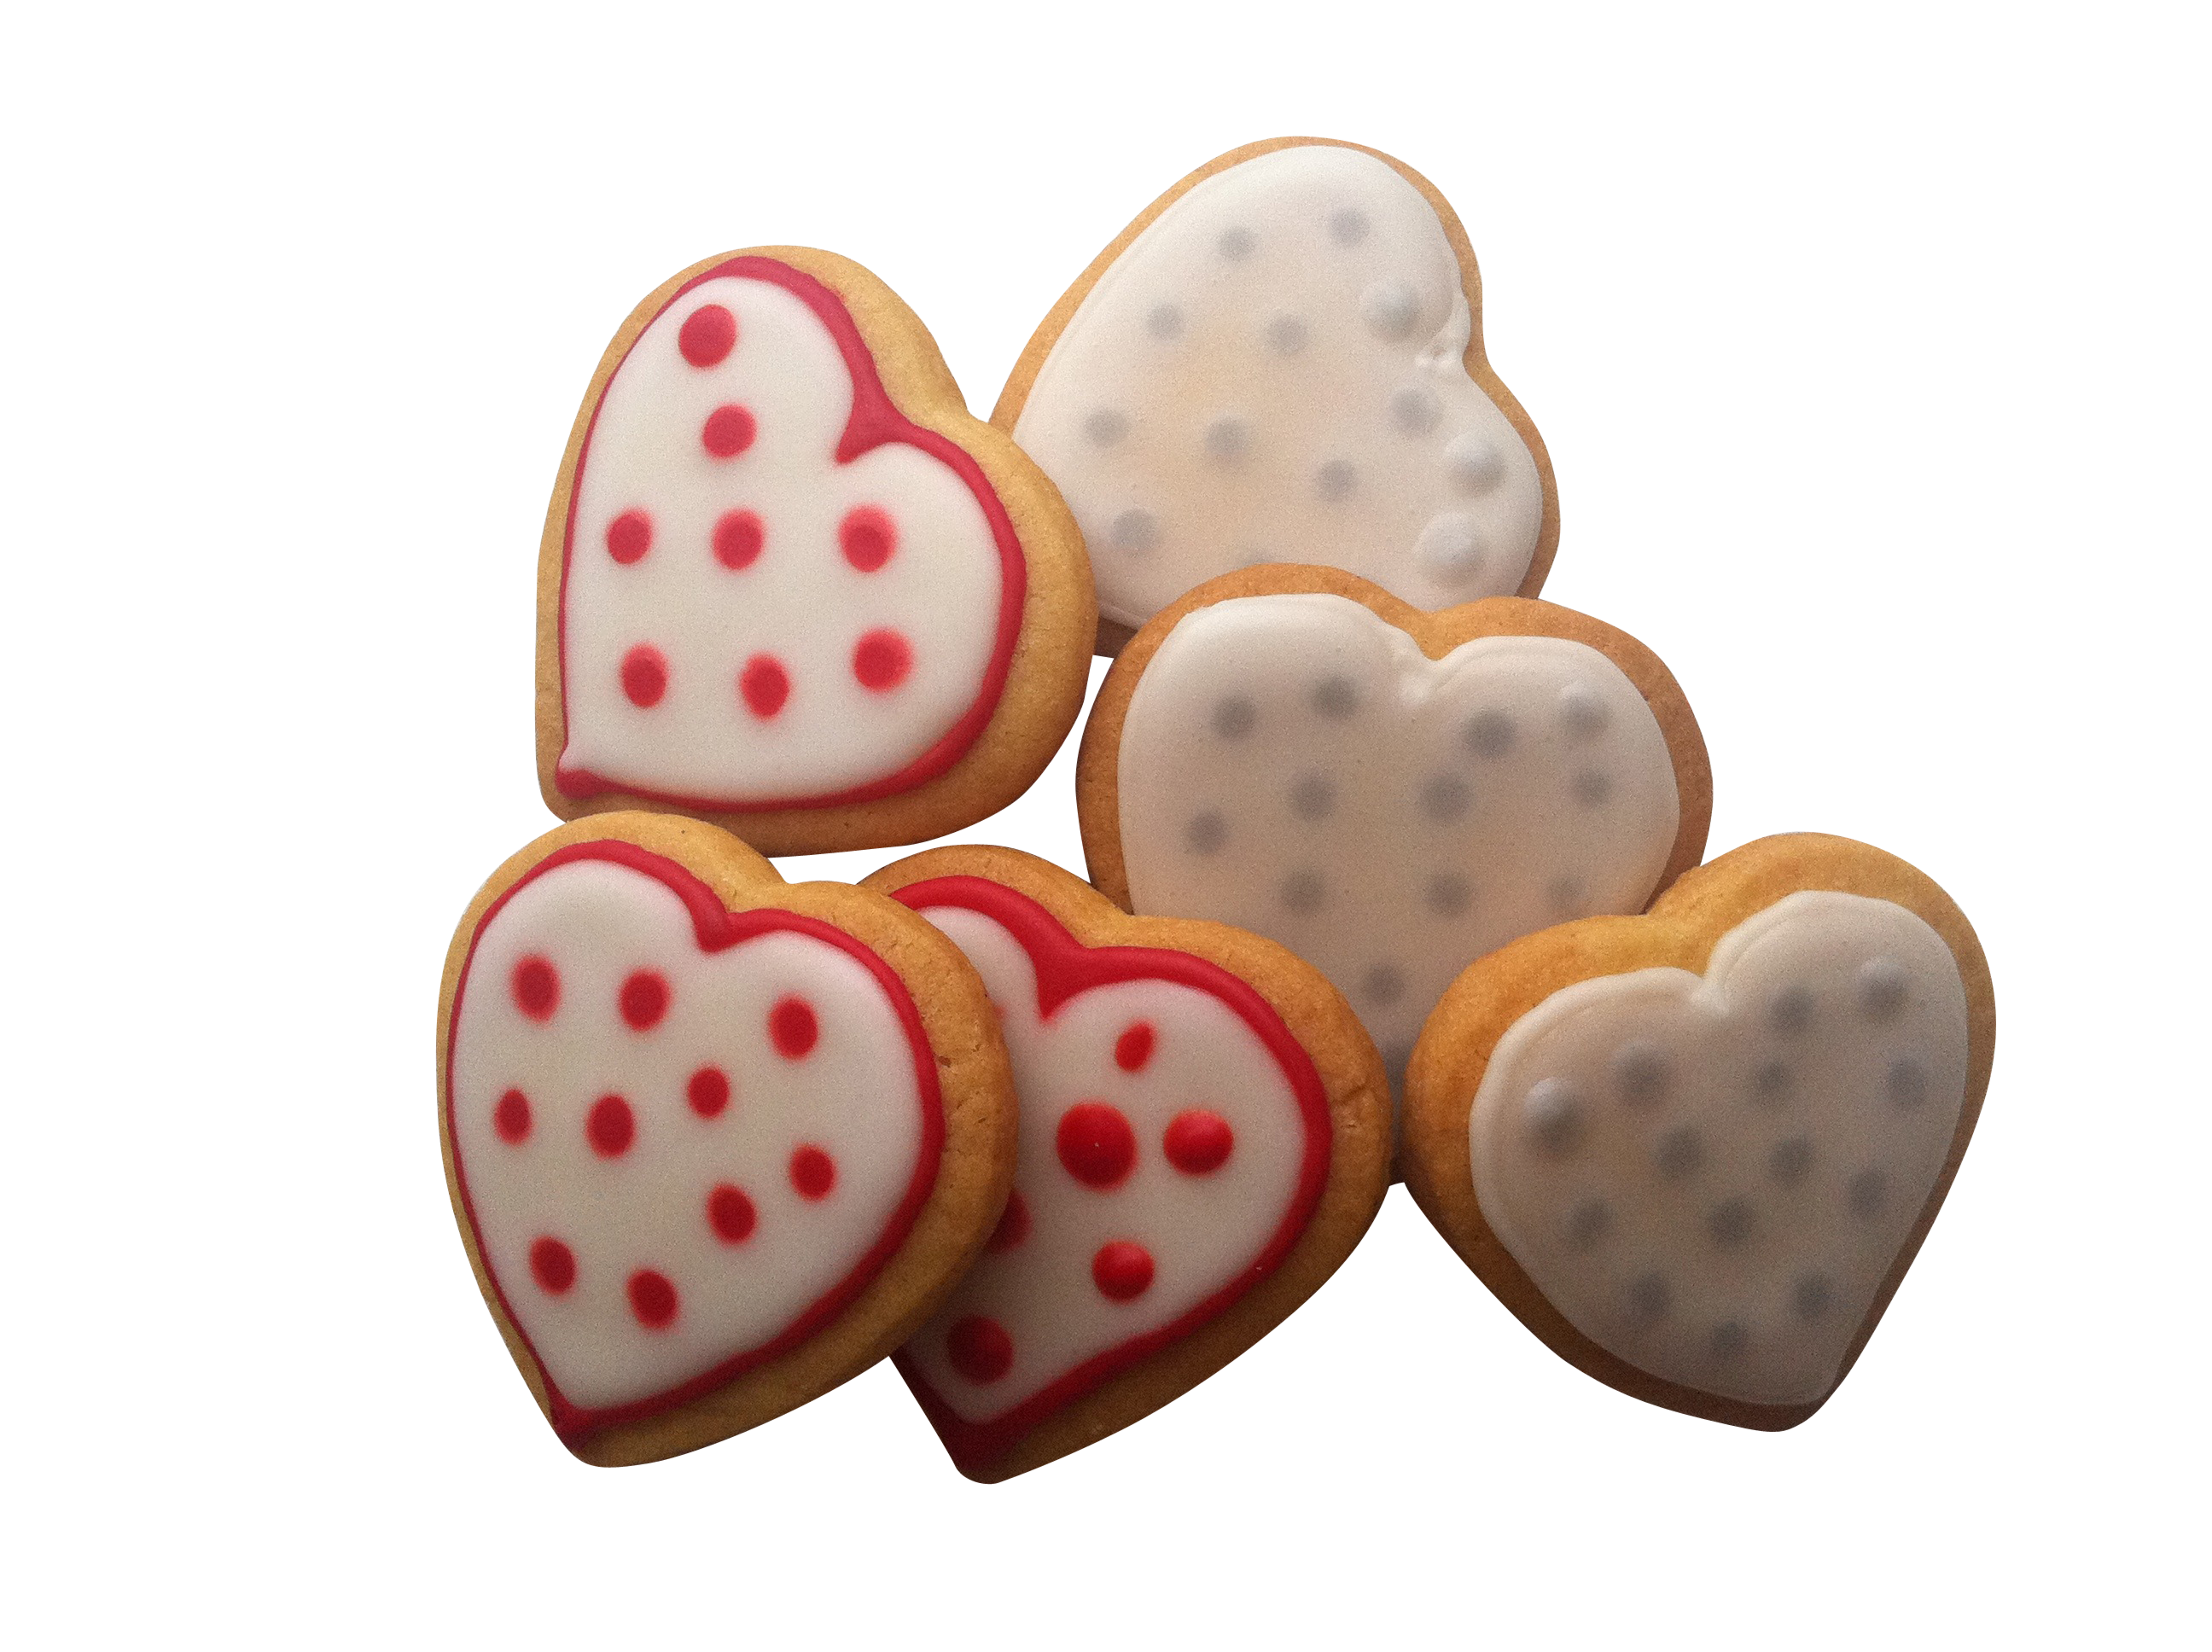 Heart Shaped Brown Cookies PNG Image